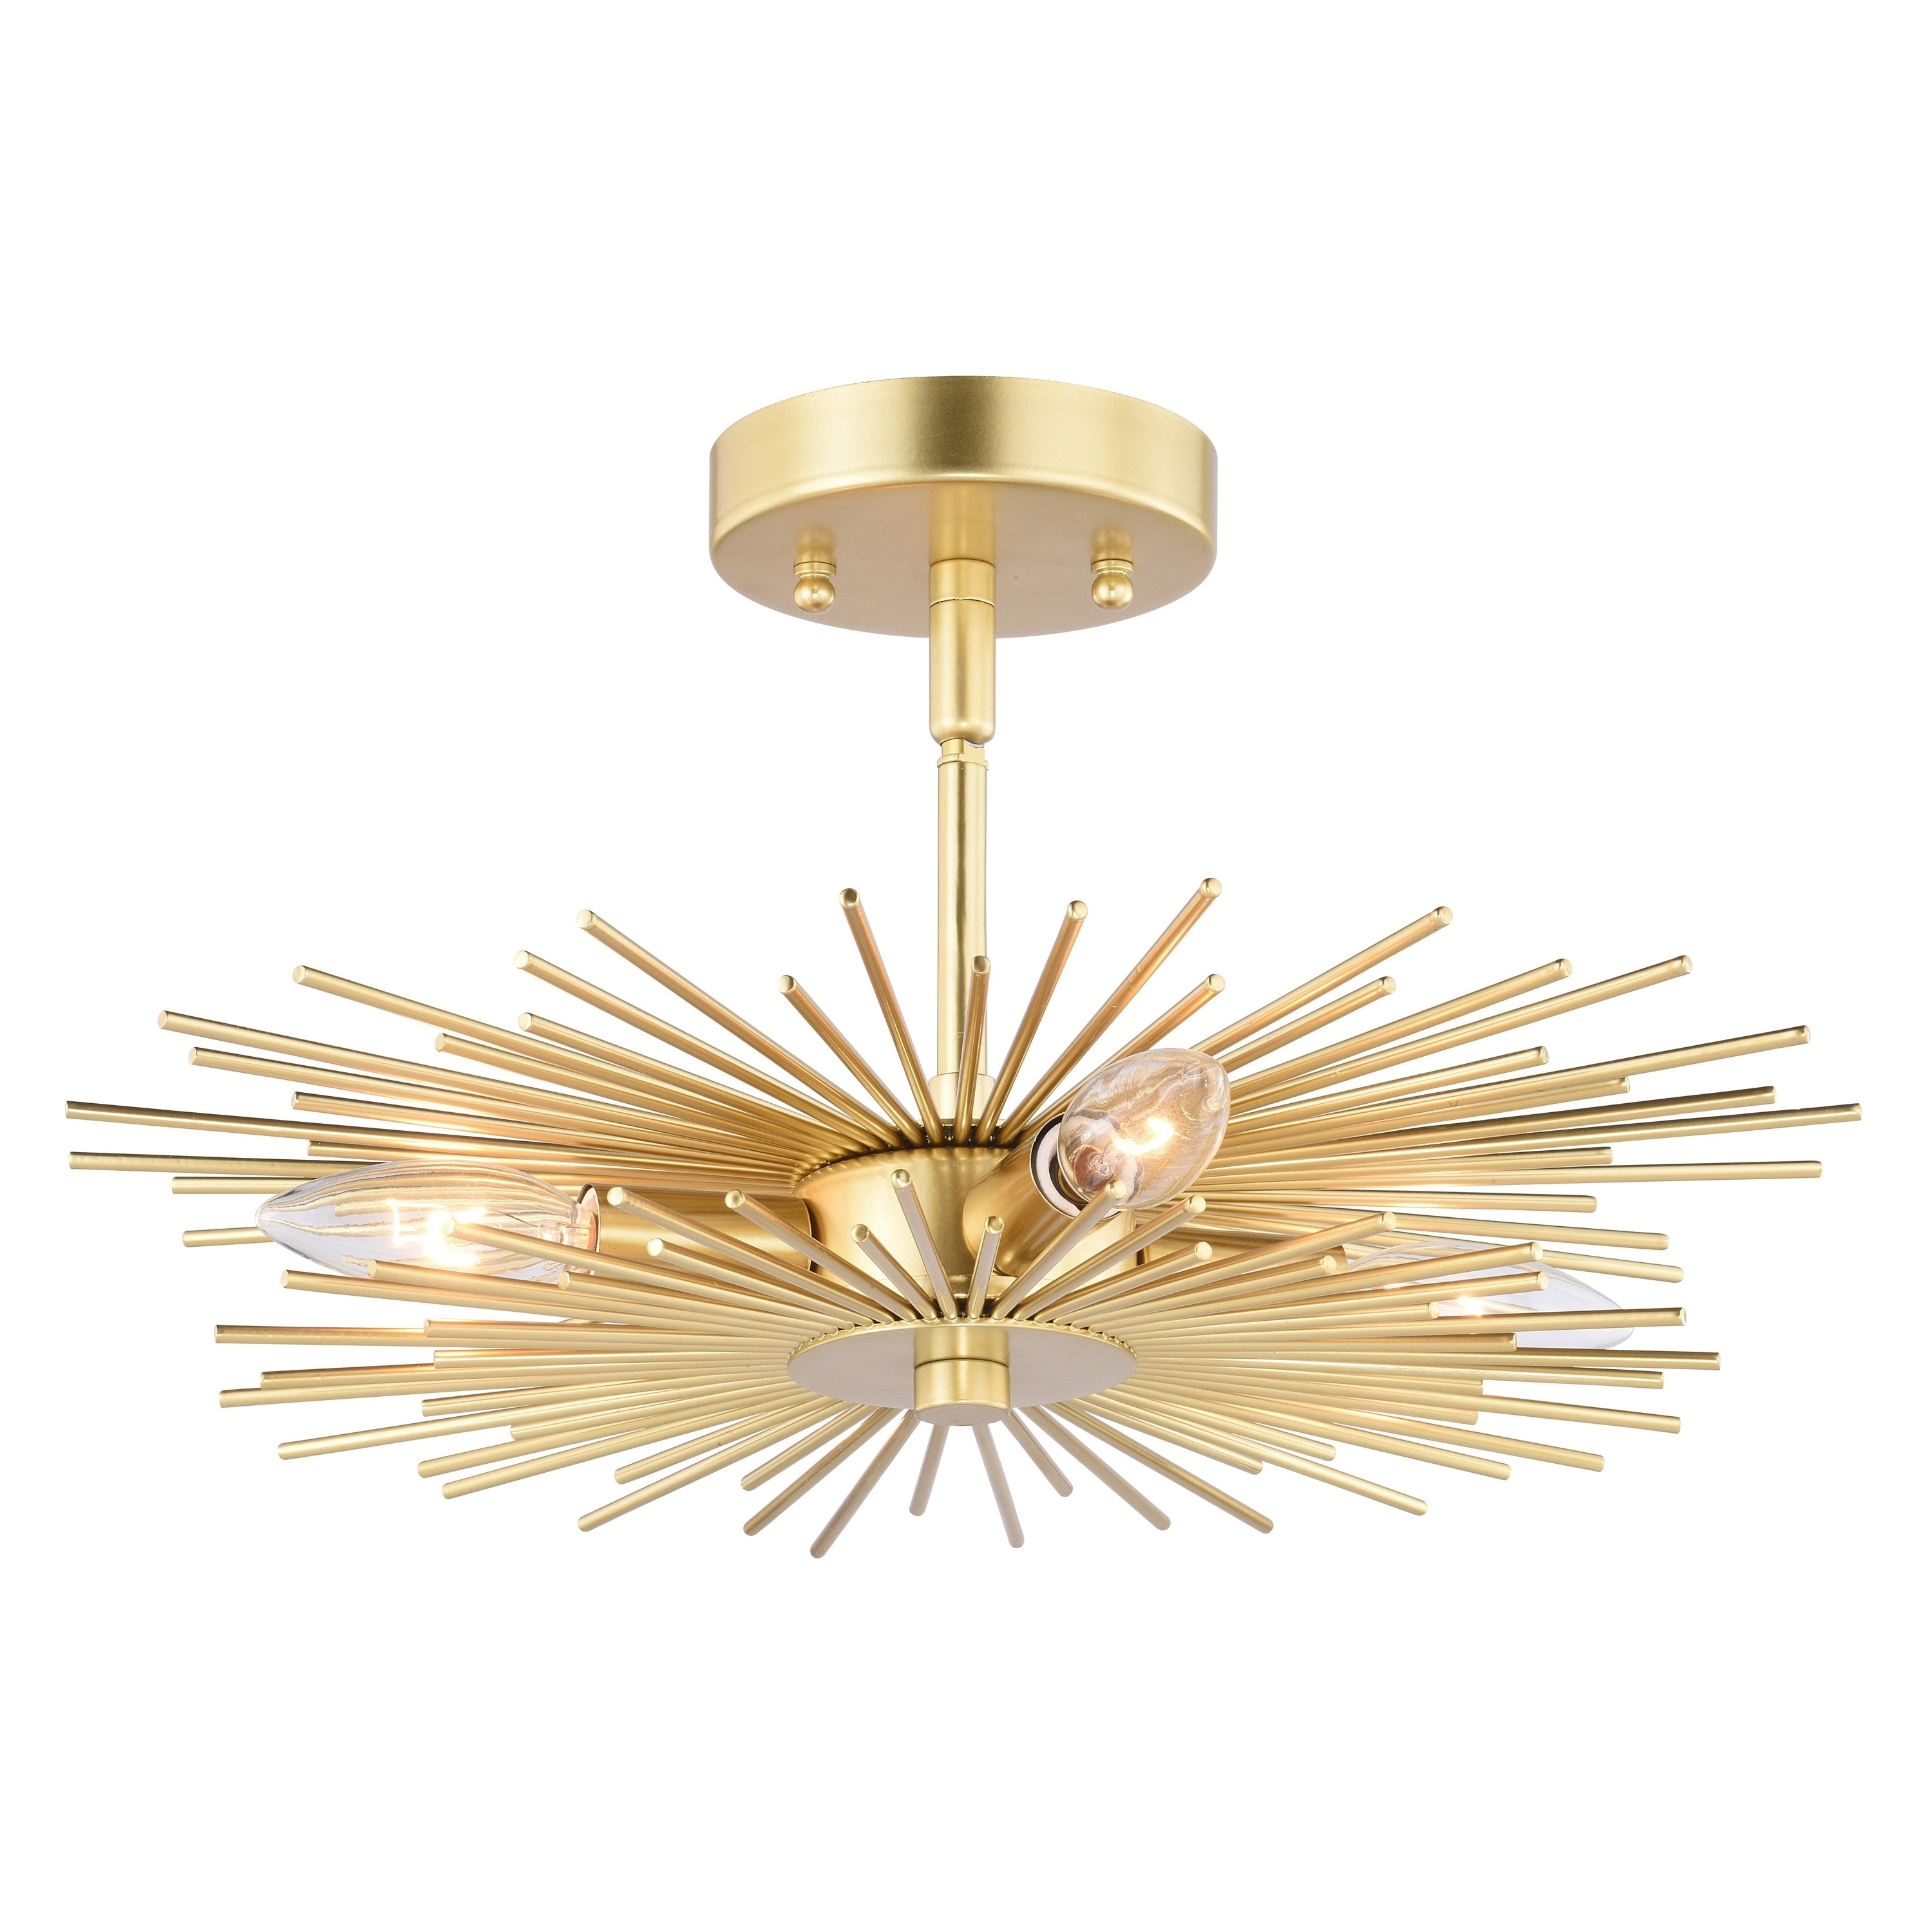 Image of: Shop Black Friday Deals On Nikko 16 In W Gold Mid Century Modern Semi Flush Mount Ceiling Light 16 In W X 9 5 In H X 16 In D Overstock 28855335